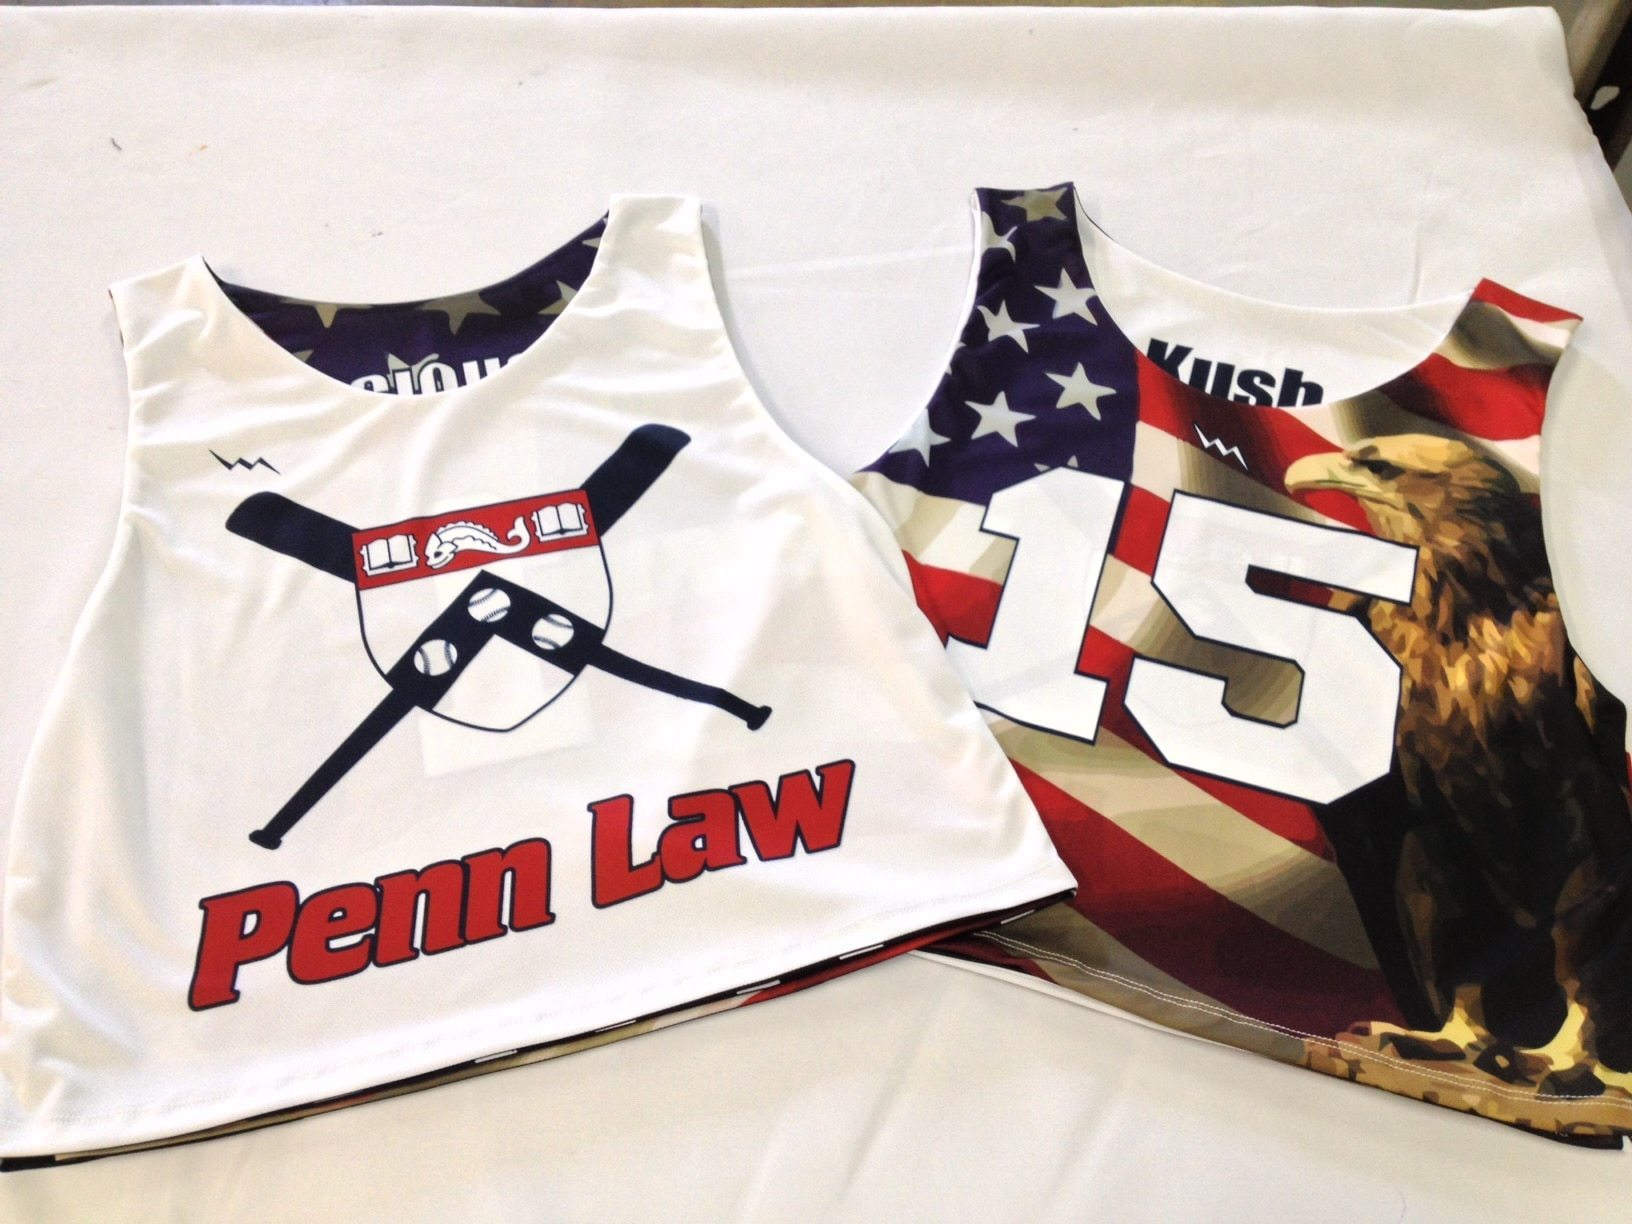 penn law pinnies